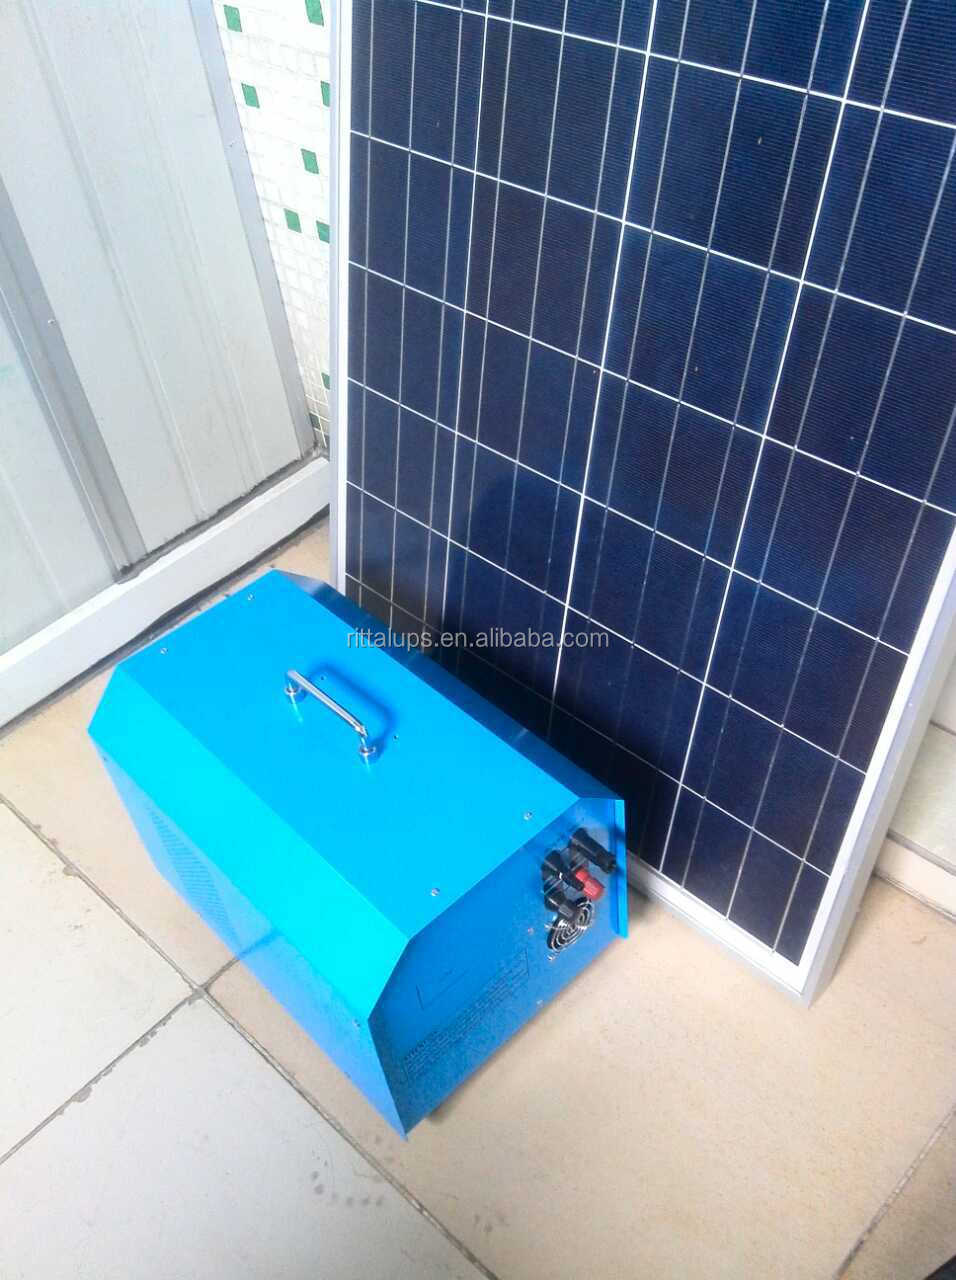 350w 600w 1000w 1500w solar power system for home